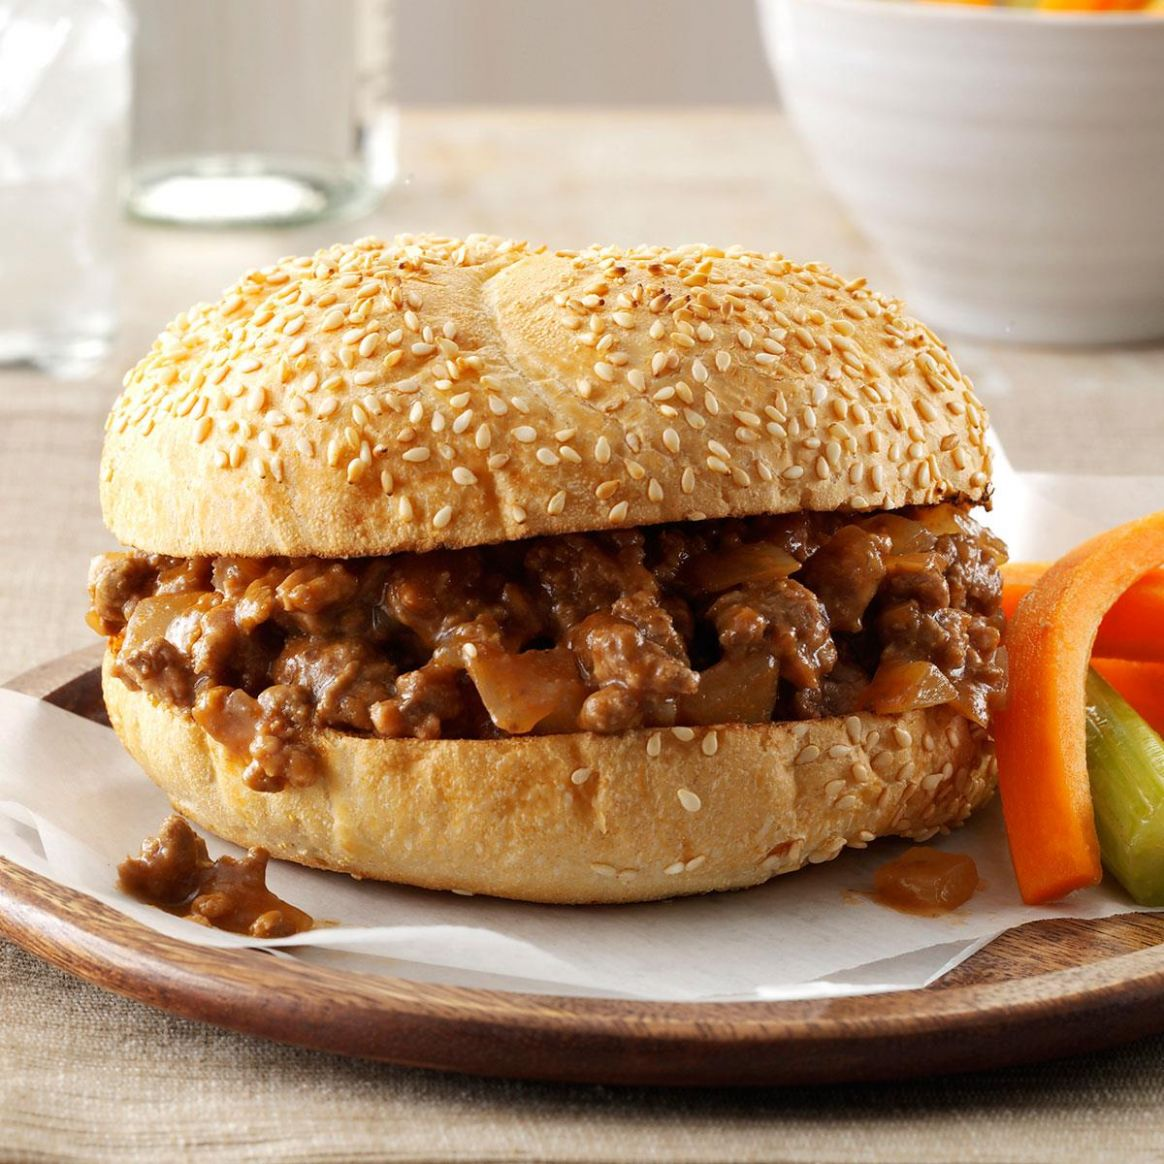 Tangy Barbecued Beef Sandwiches - Sandwich Recipes Taste Of Home